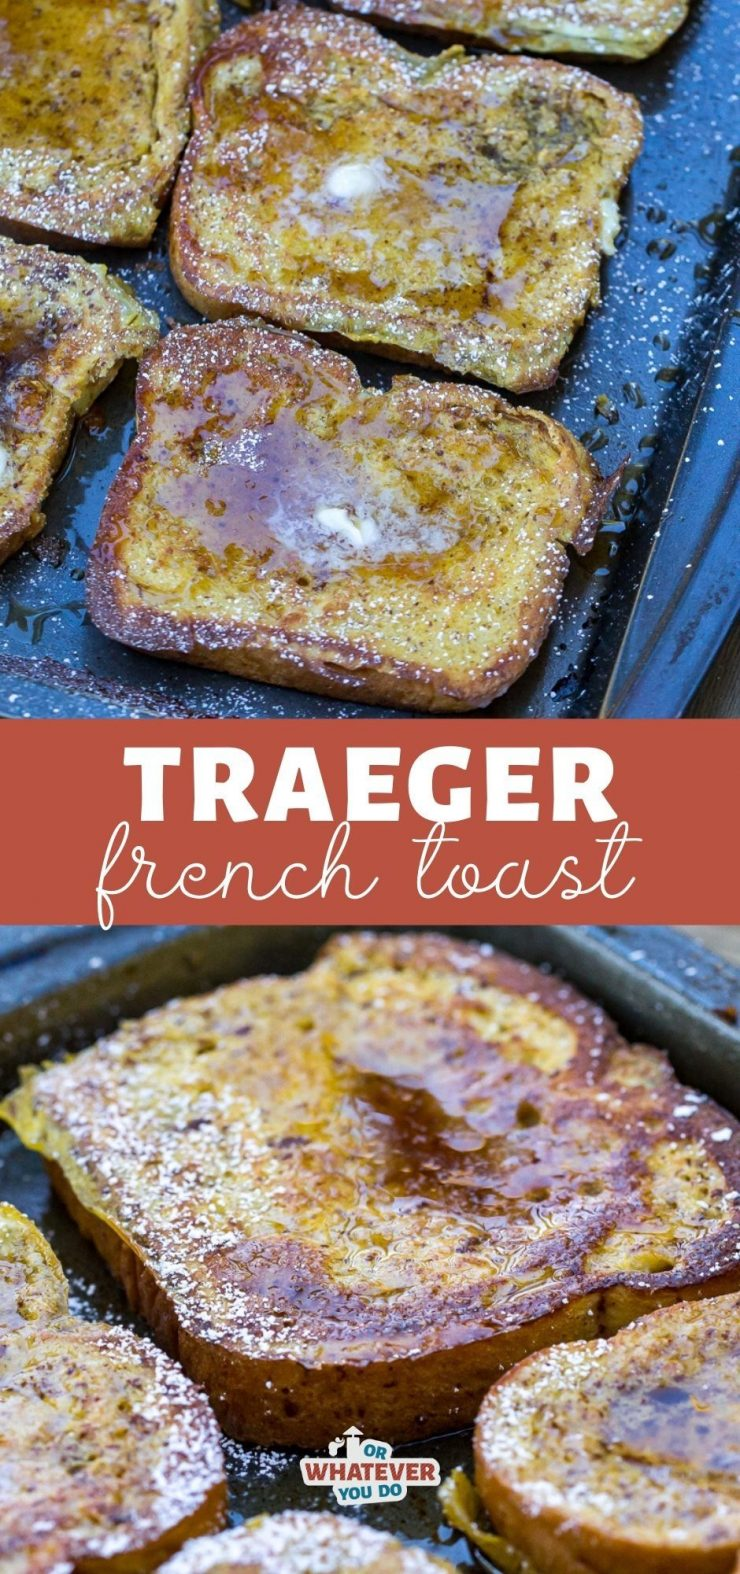 Traeger Grilled French Toast